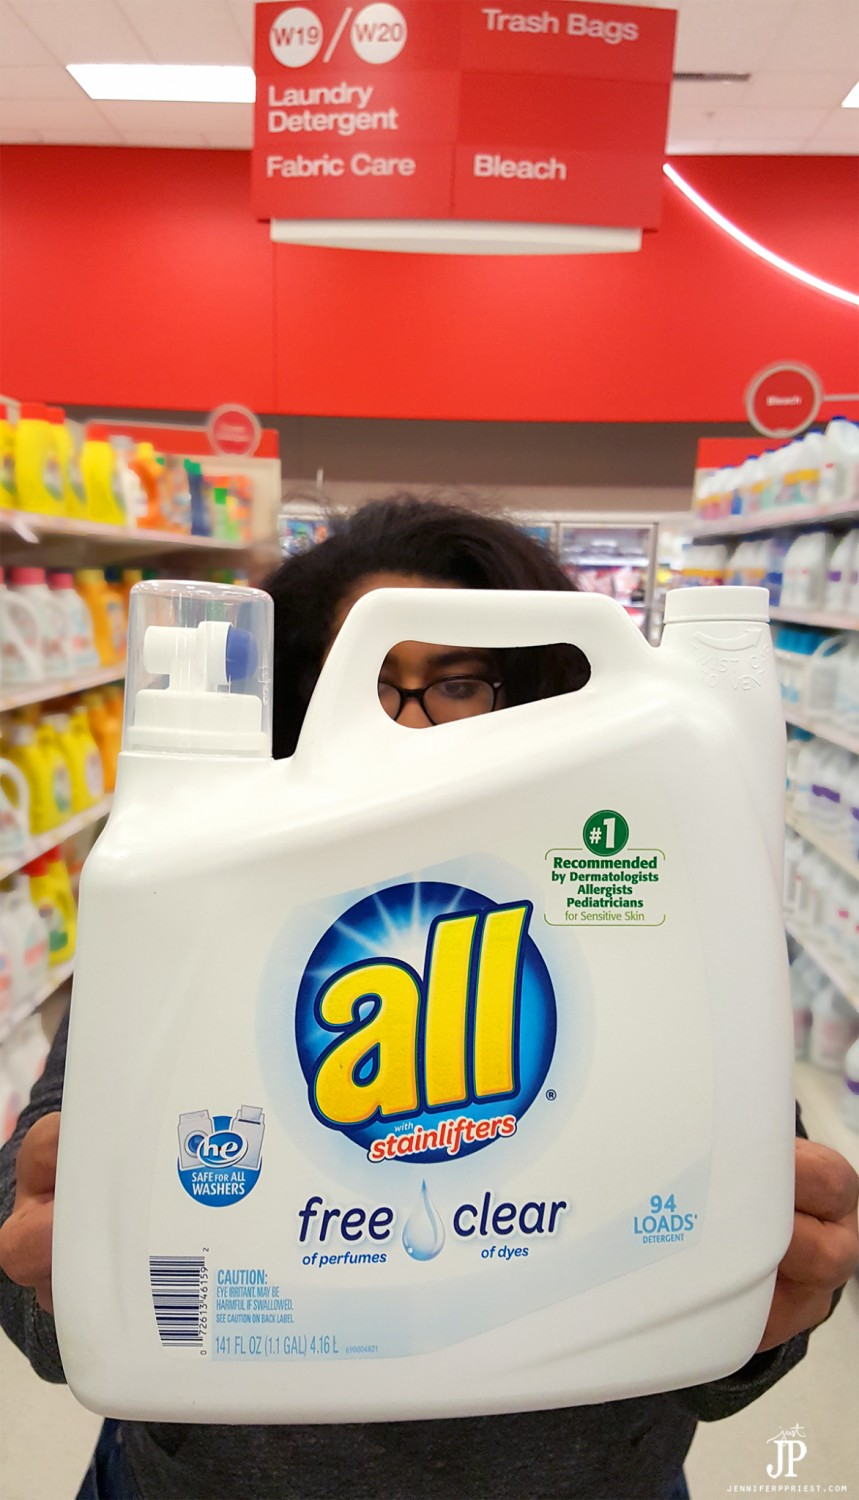 Find all free and clear detergent in the laundry aisle at Target Stores. We use all to deal with our seasonal allergies - it removes 99% of allergens from clothing.